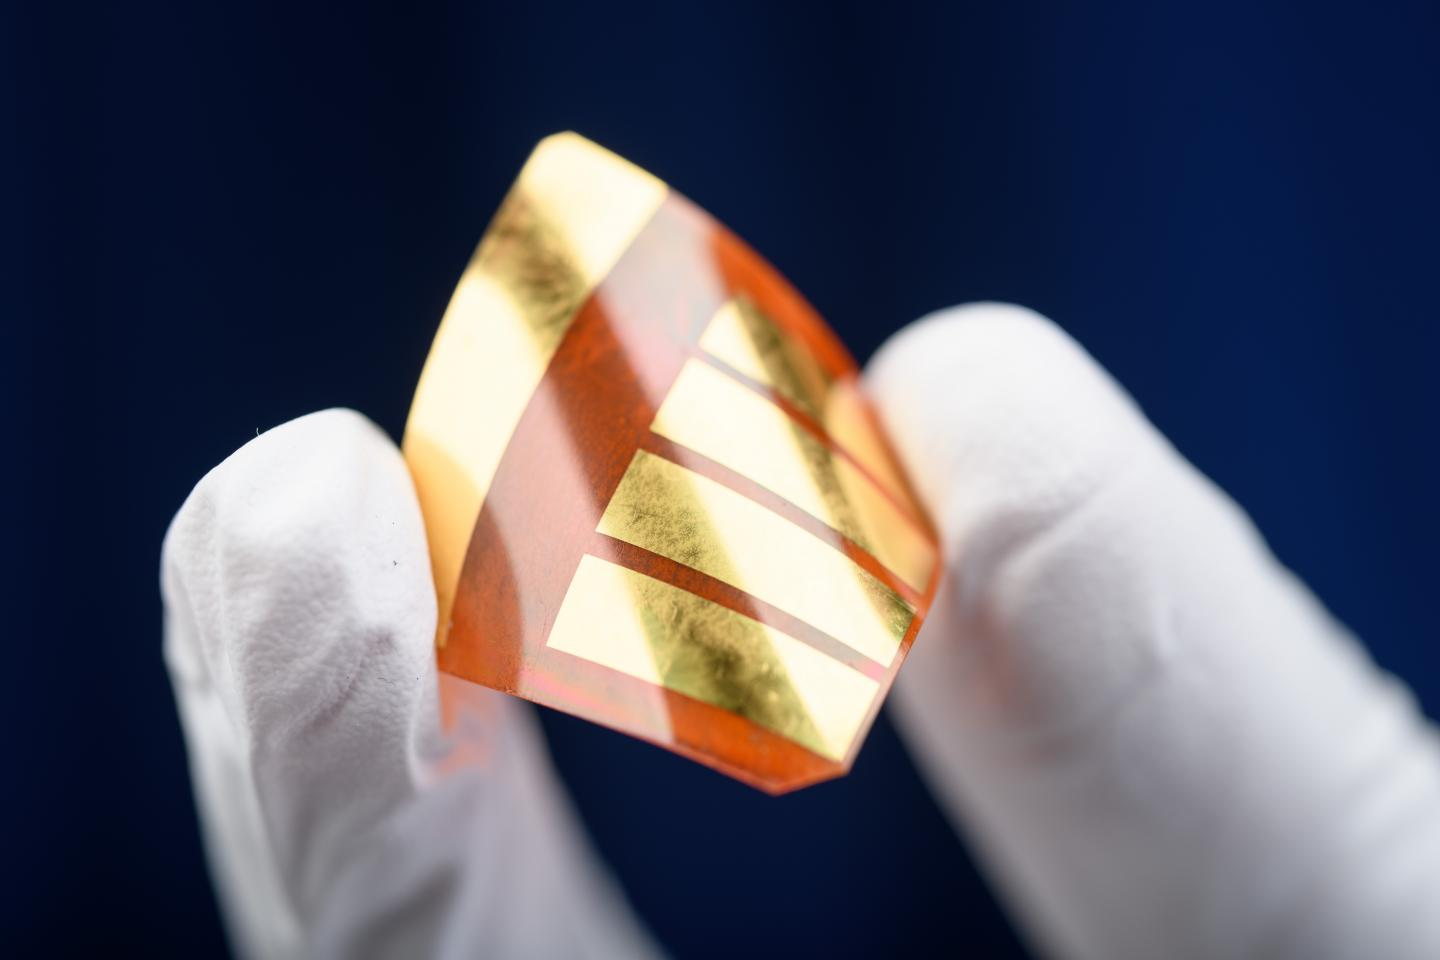 A researcher at Georgia Tech holds a perovskite-based solar cell, which is flexible and lighter than silicon-based versions.